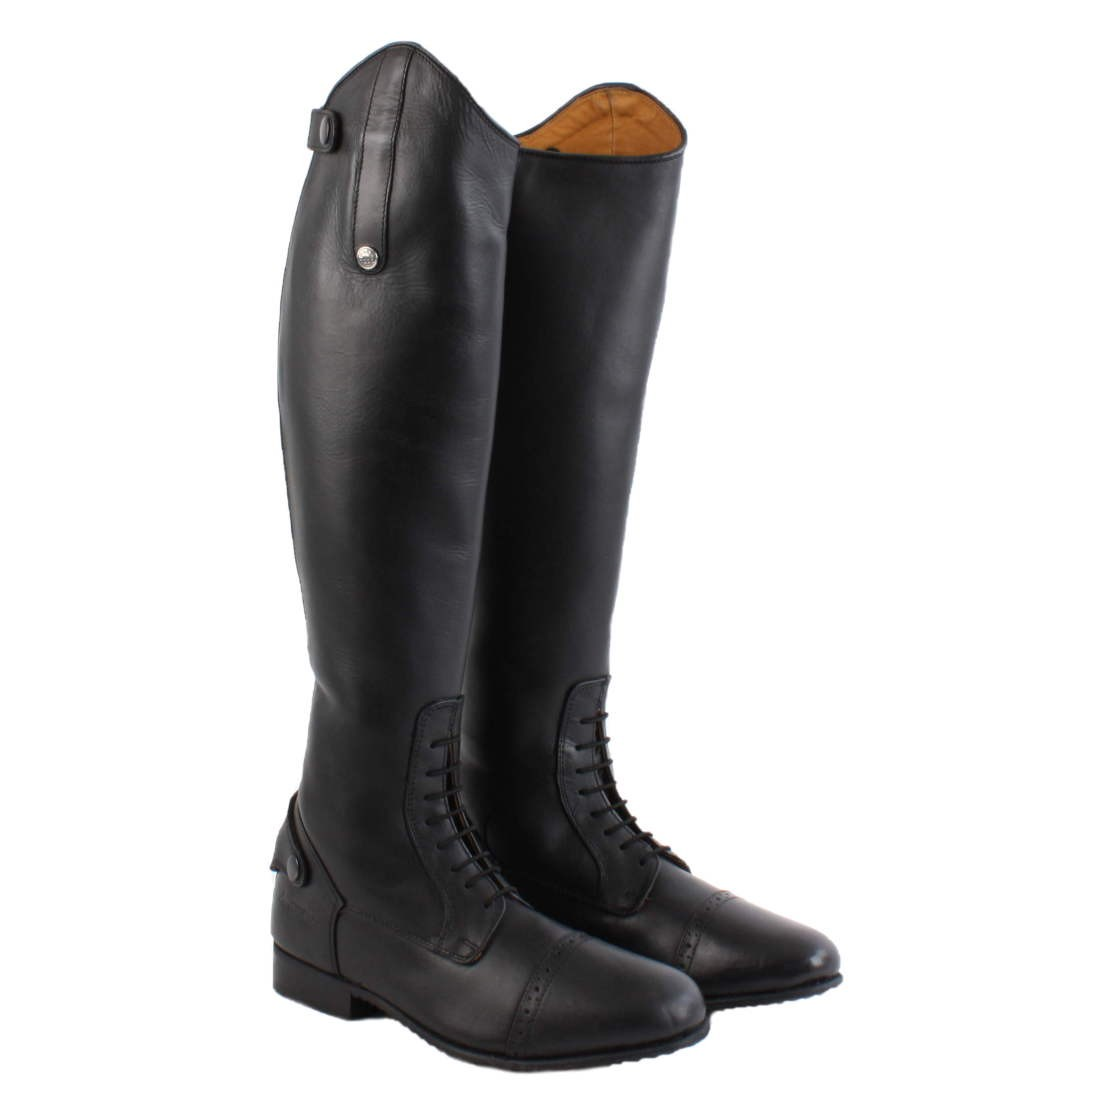 Todd Field Competition Boots (Standard Sizes)